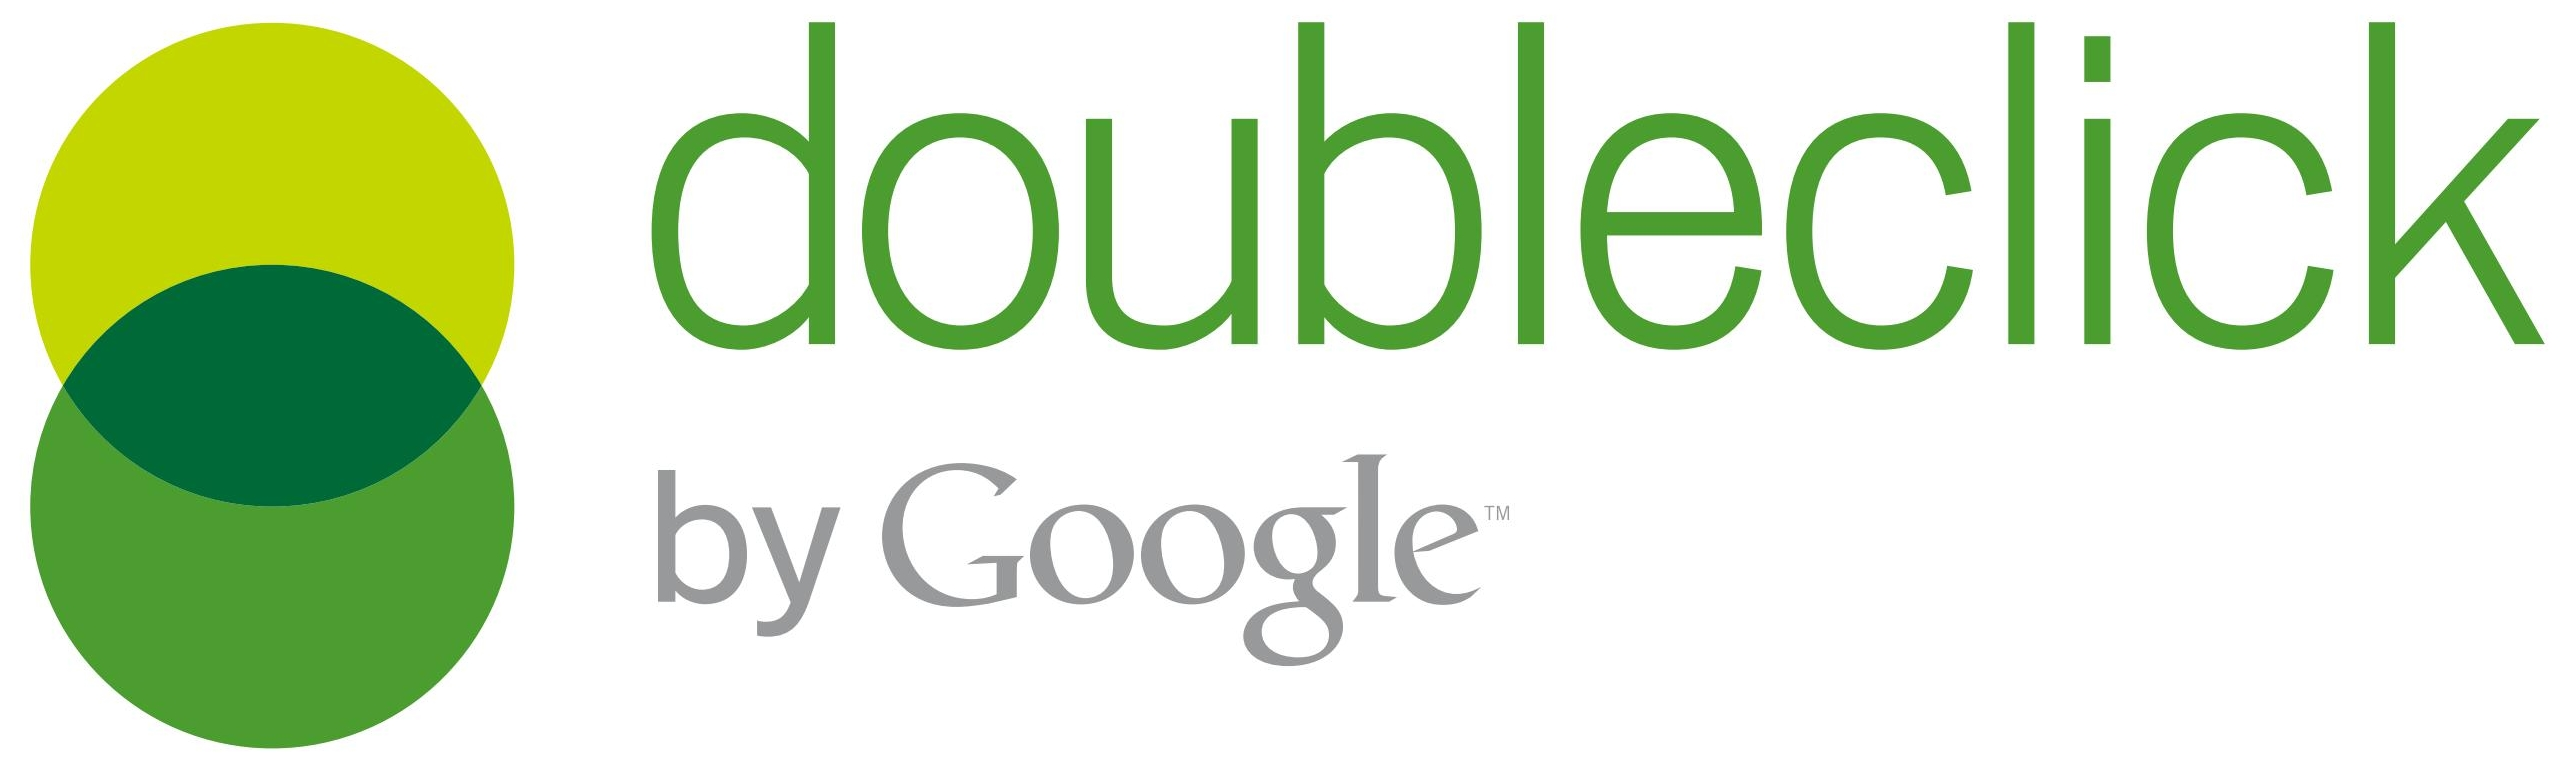 6 doubleclick for publishers case studies to learn from